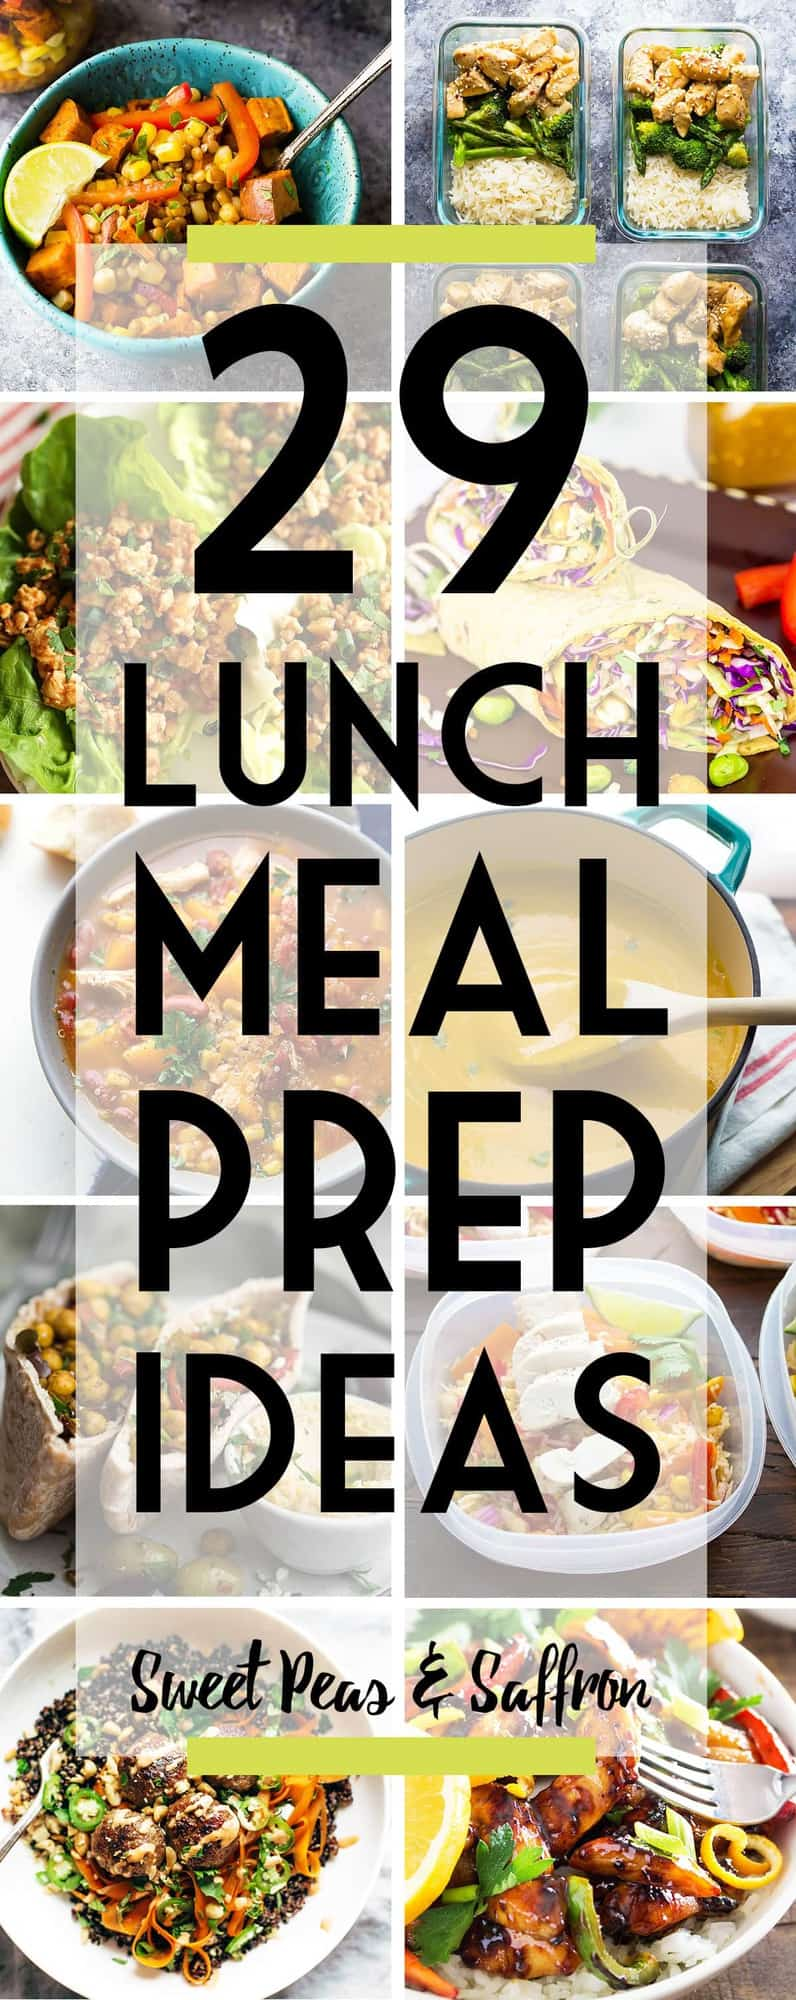 38 easy lunch meal prep ideas video sweet peas and saffron these 38 easy lunch meal prep ideas prove that eating healthy can be delicious and is forumfinder Image collections